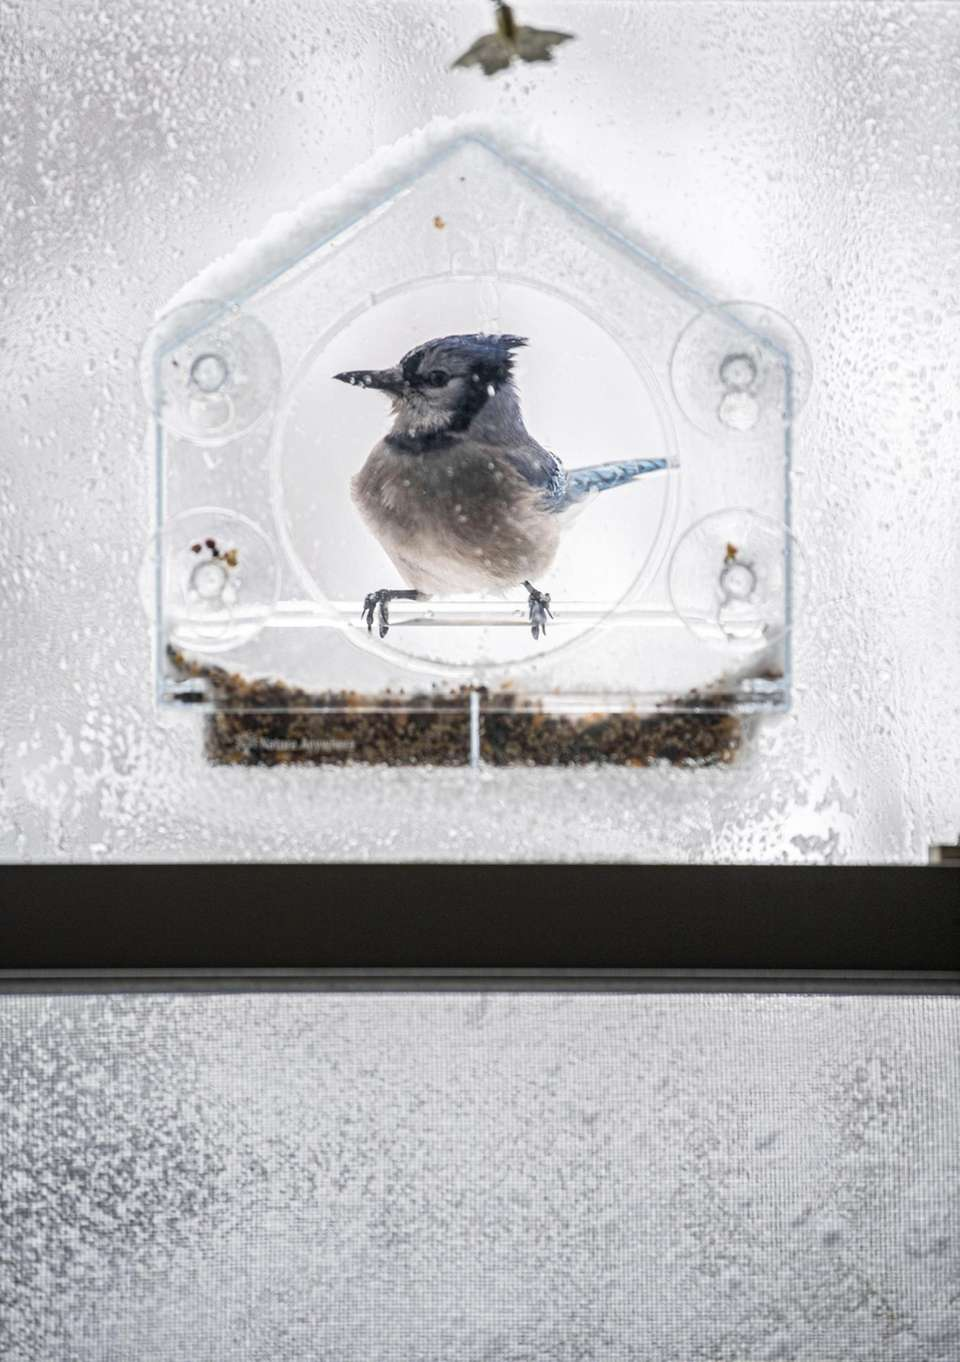 A bluejay seeks refuge and food during today's